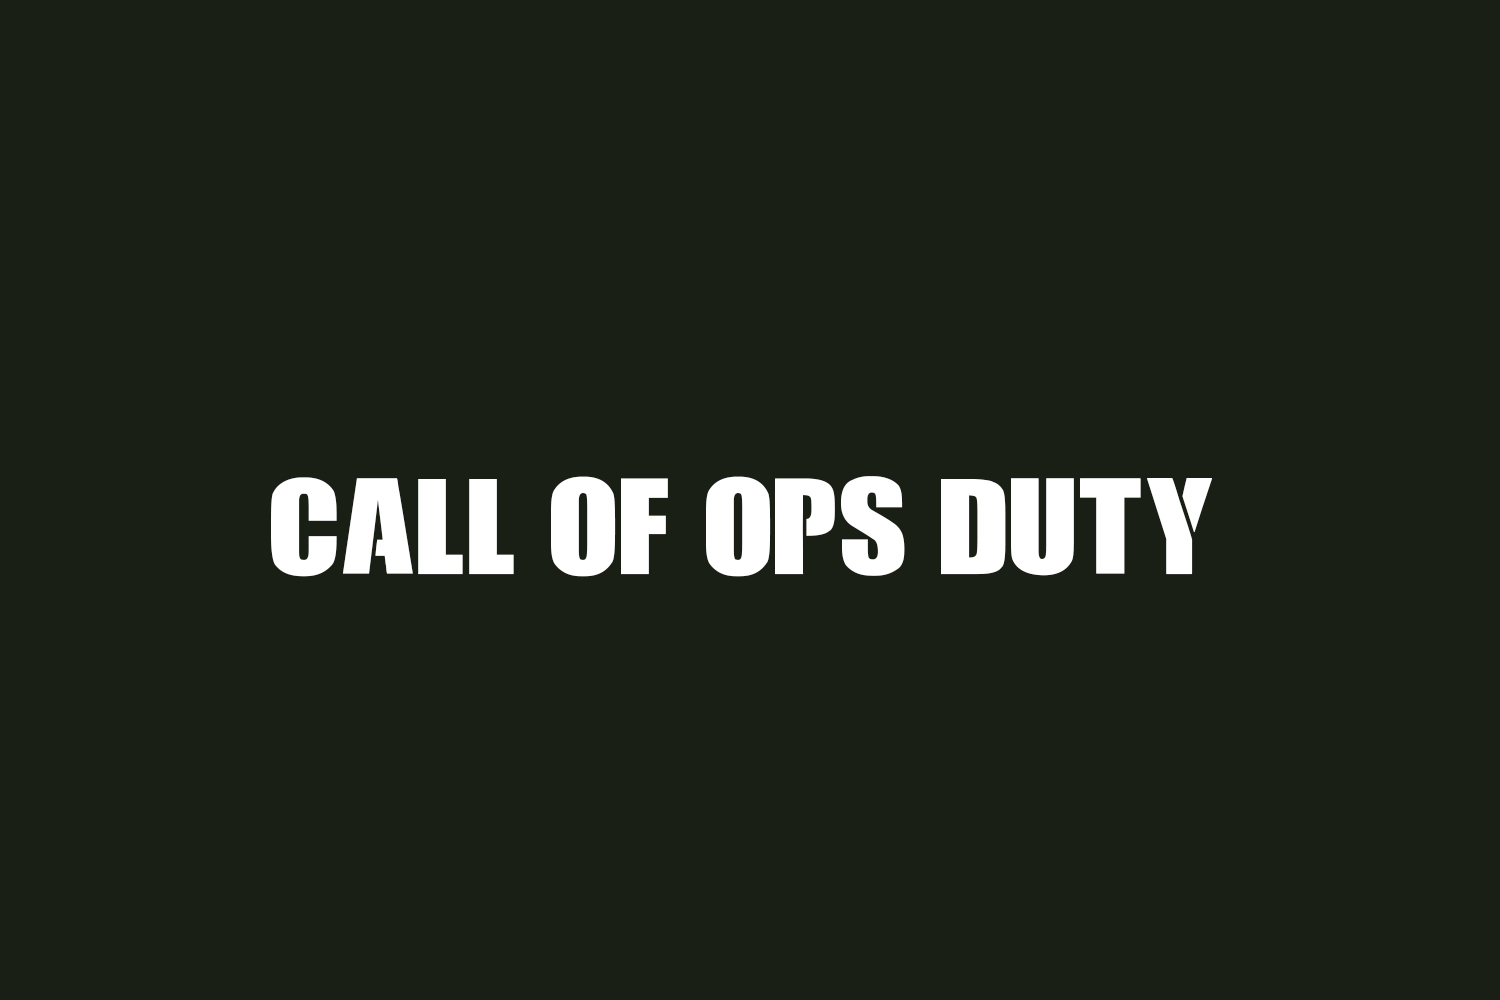 Call of Ops Duty Free Font